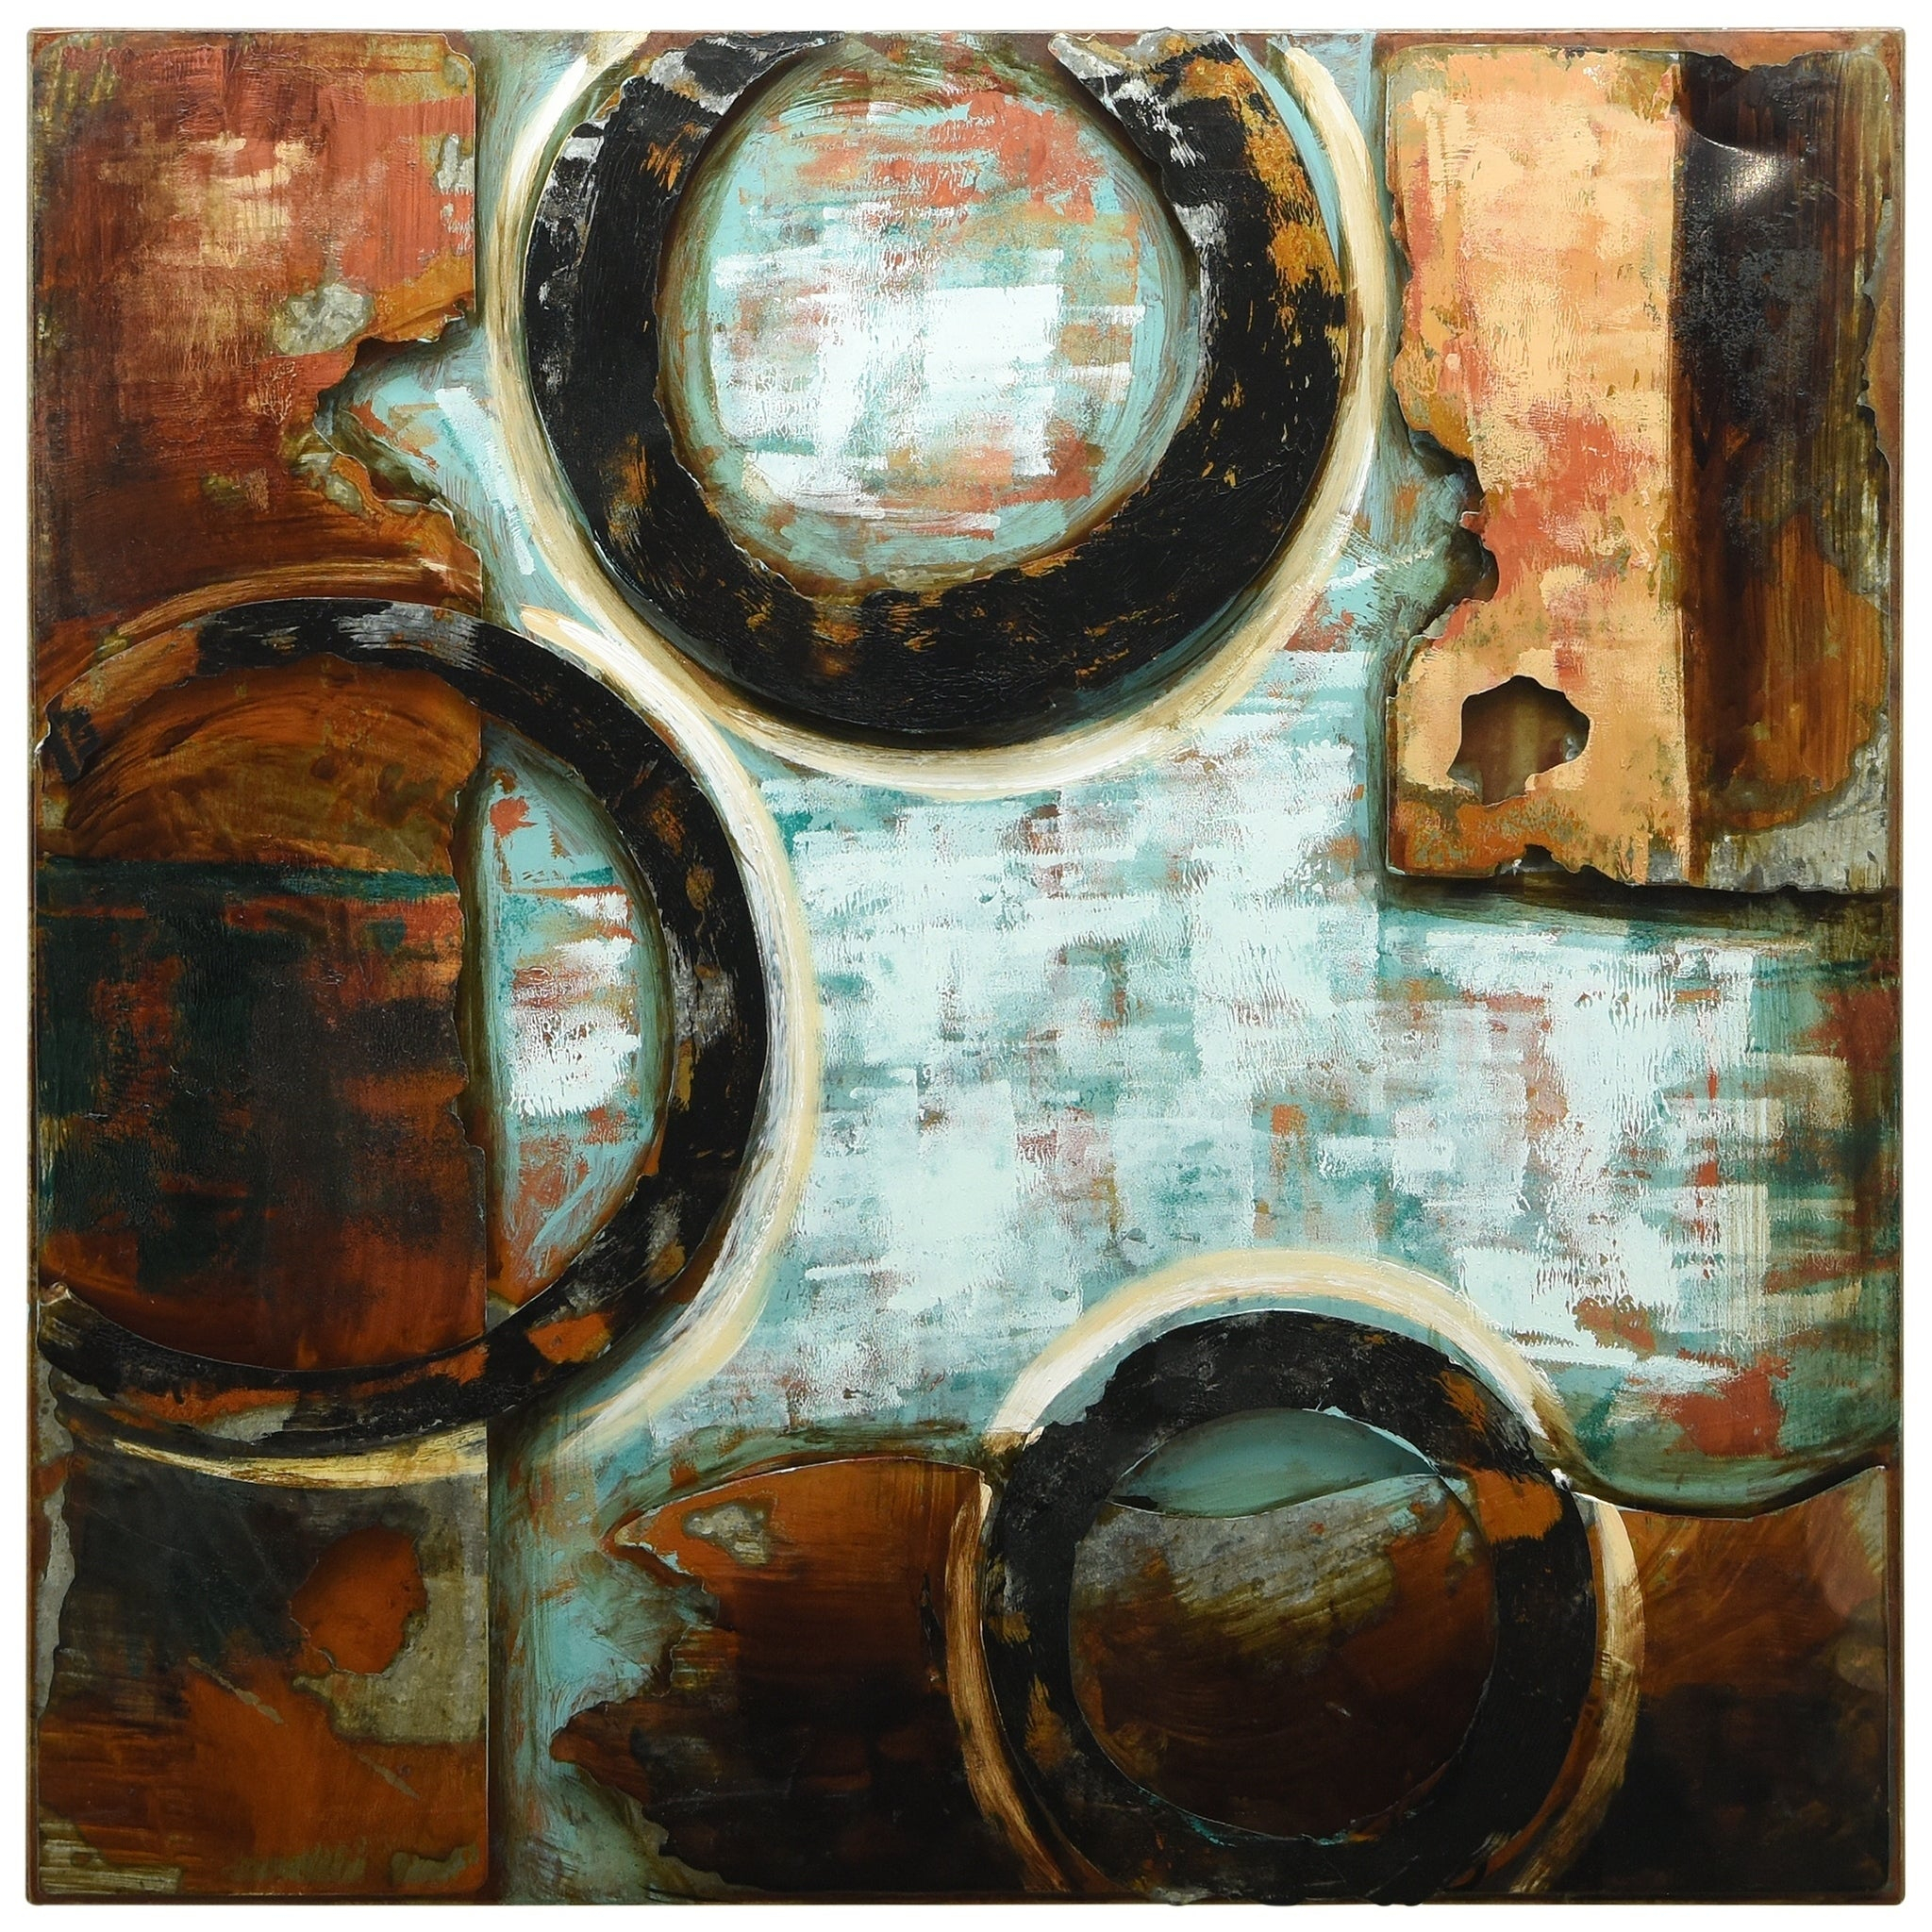 """Revolutions 2"""" Mixed Media Iron Hand Painted Dimensional Wall Décor Regarding Most Current Mixed Media Iron Hand Painted Dimensional Wall Decor (Gallery 5 of 20)"""